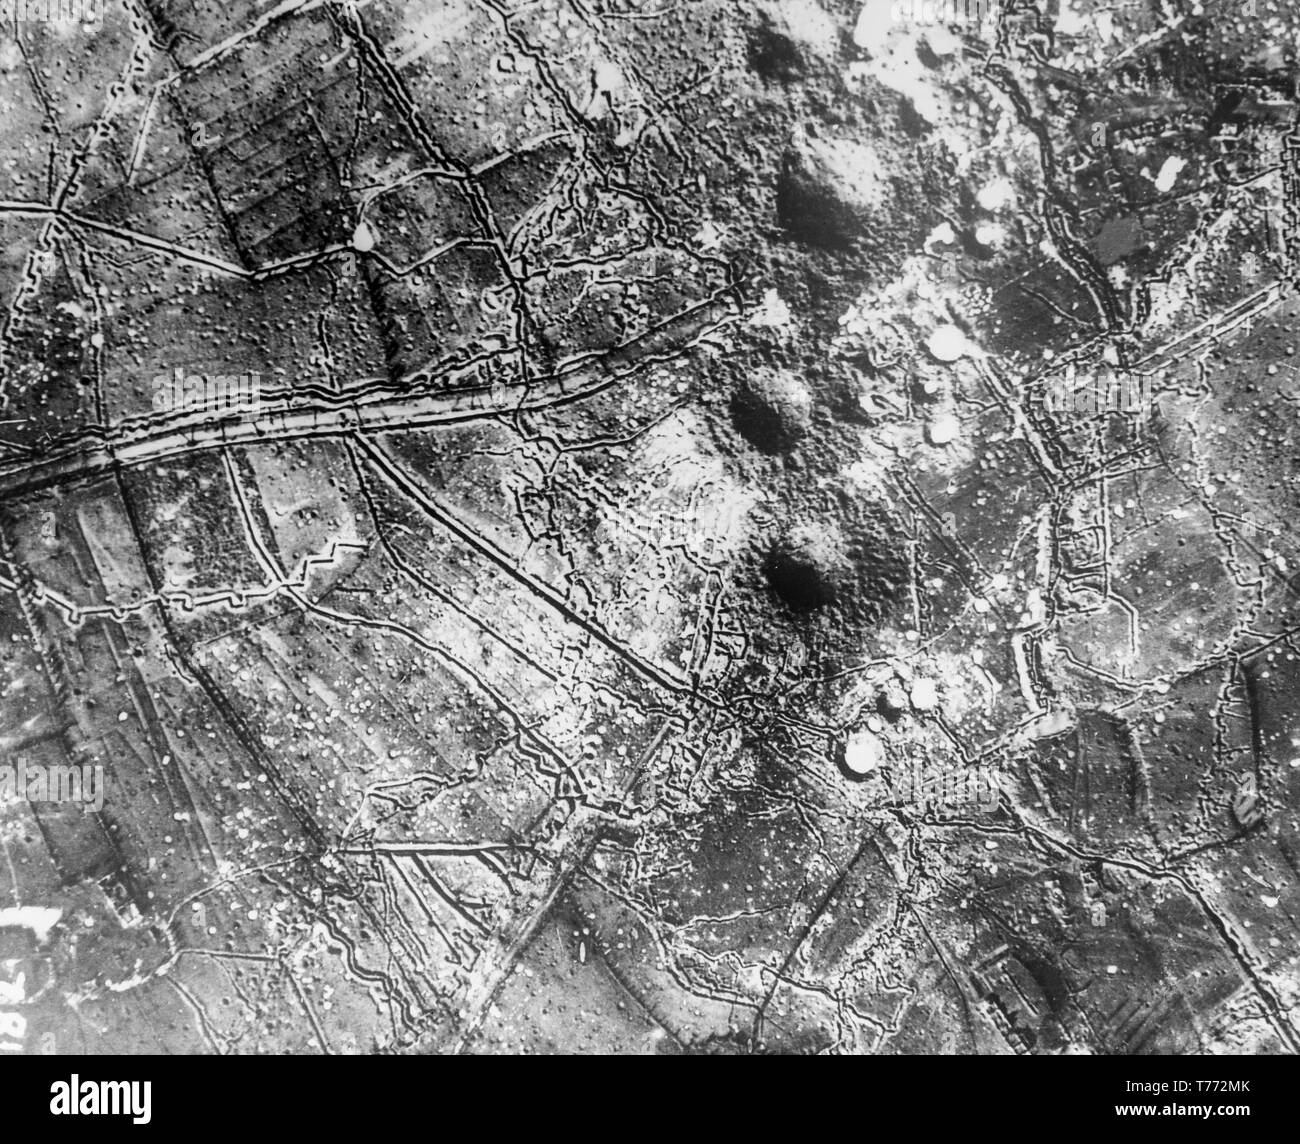 A contemporary black and white aerial photograph, taken somewhere over France during World War One, showing the effects of bombing bye the British Royal Air Force and Royal Flying Corps. - Stock Image